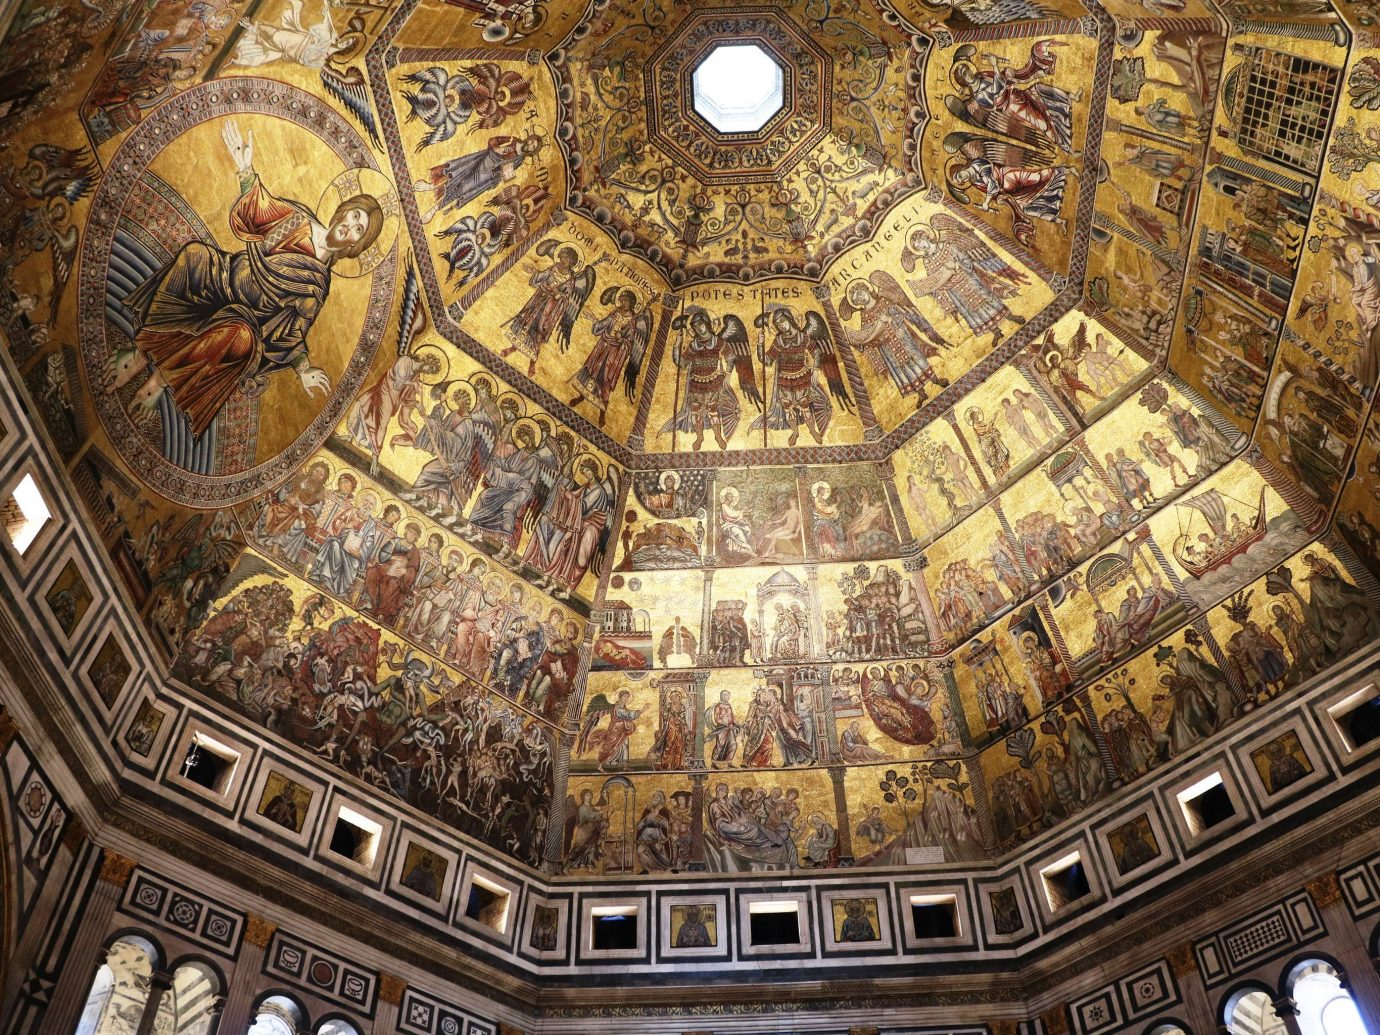 Trip Ideas indoor dome building basilica byzantine architecture ancient rome ancient history baptistery cathedral place of worship symmetry Church